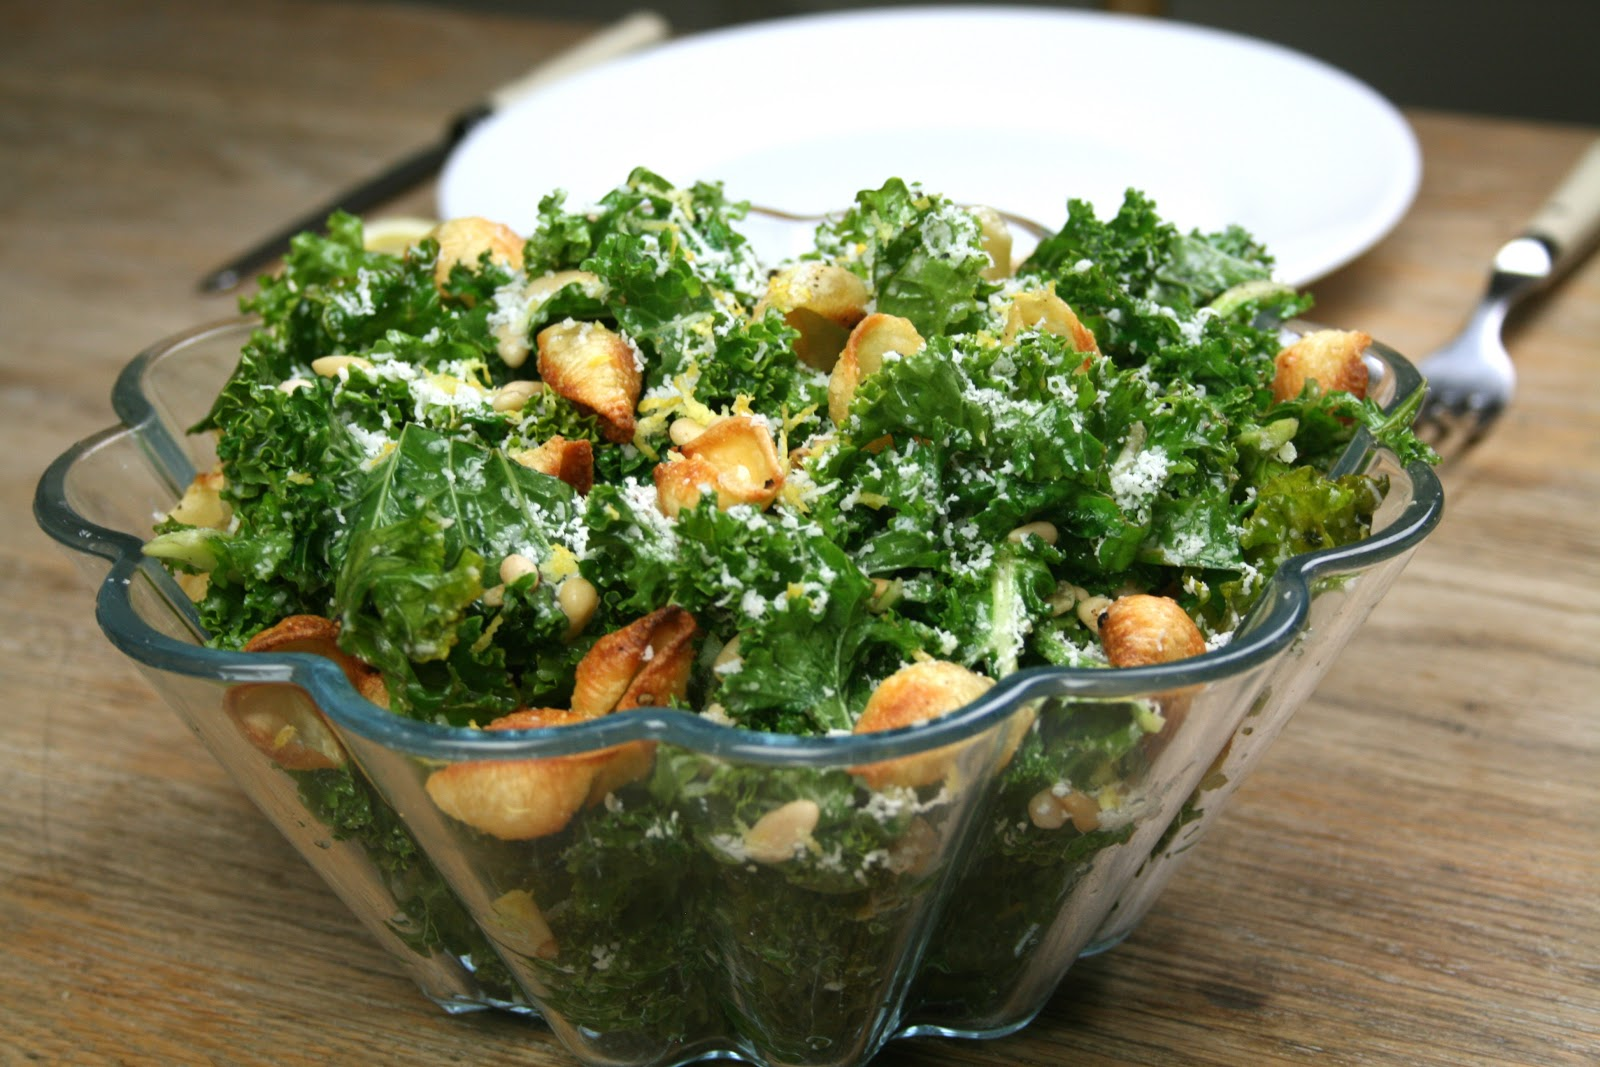 Sauteed Kale 'Caesar' Salad with Crunchy Conchiglie Croutons